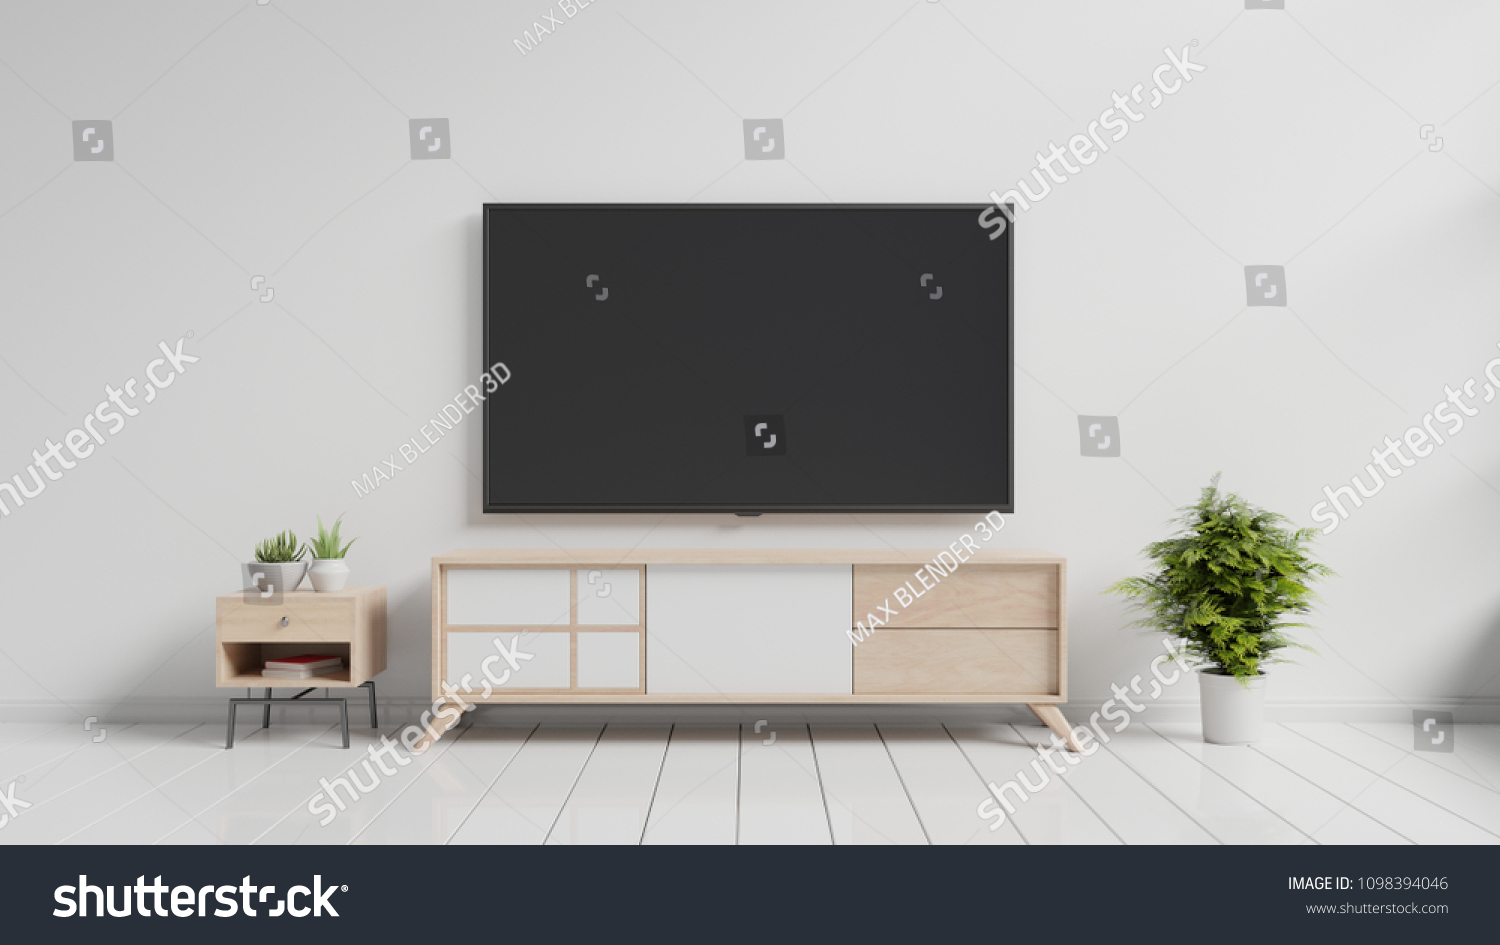 TV On Cabinet Modern Living Room Stock Illustration 1098394046 ...